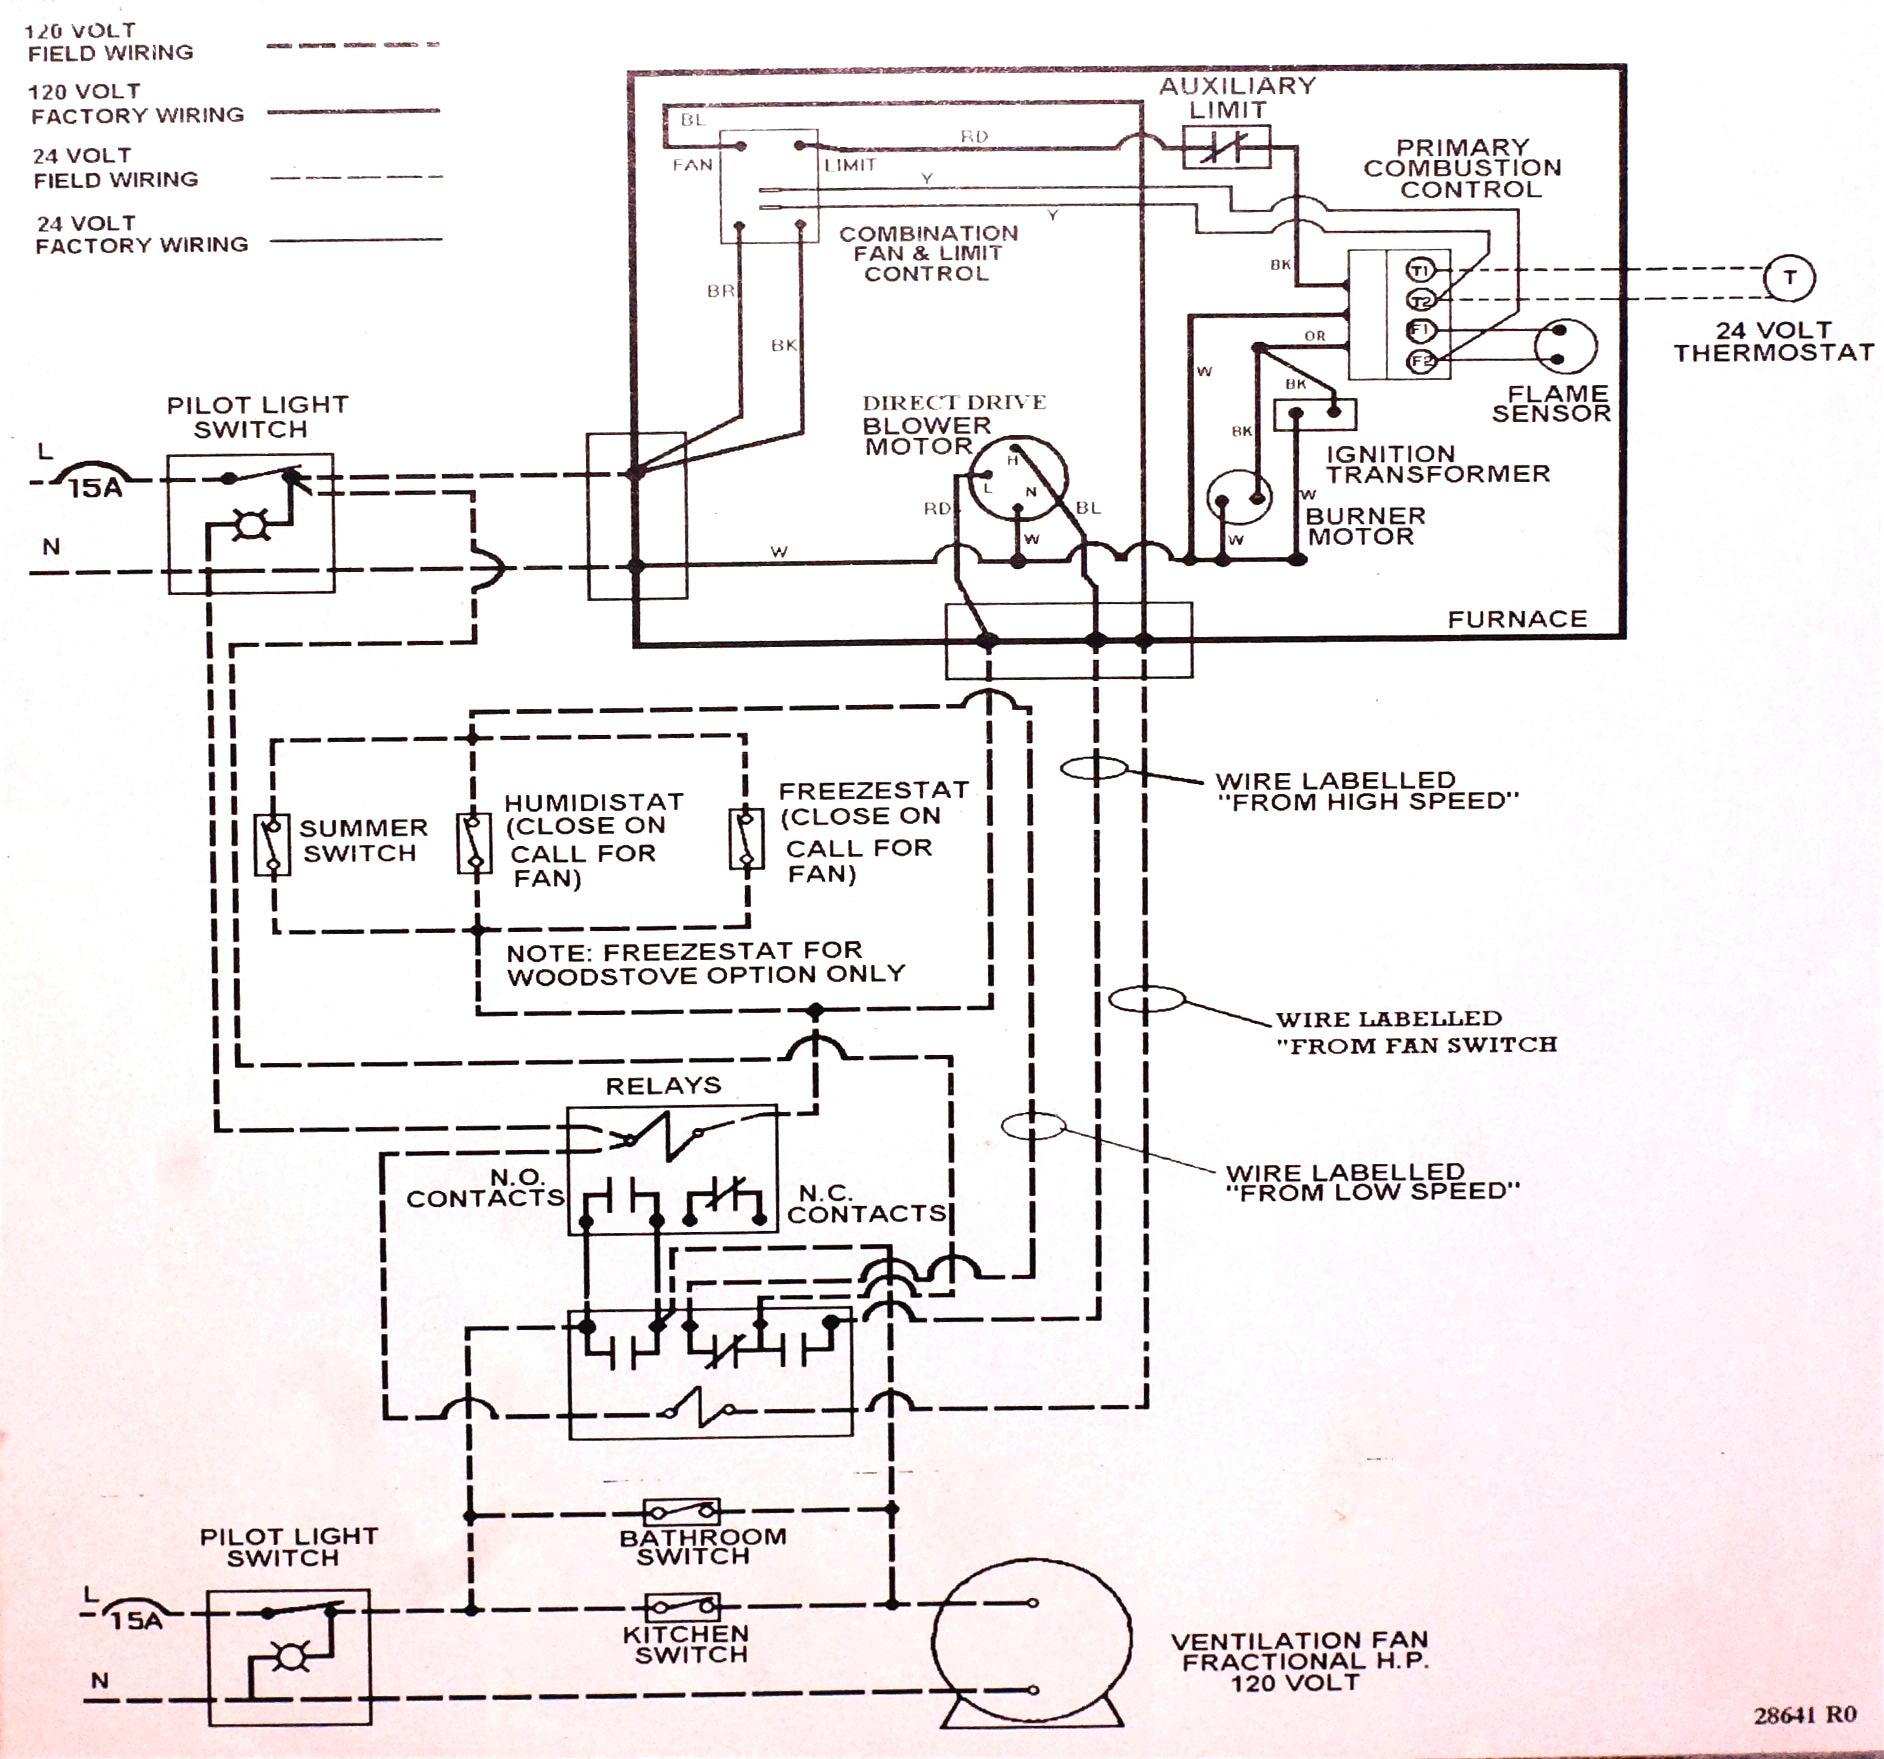 hight resolution of wiring diagram sheets detail name nordyne thermostat wiring diagram diagram nordyne thermostat wiring